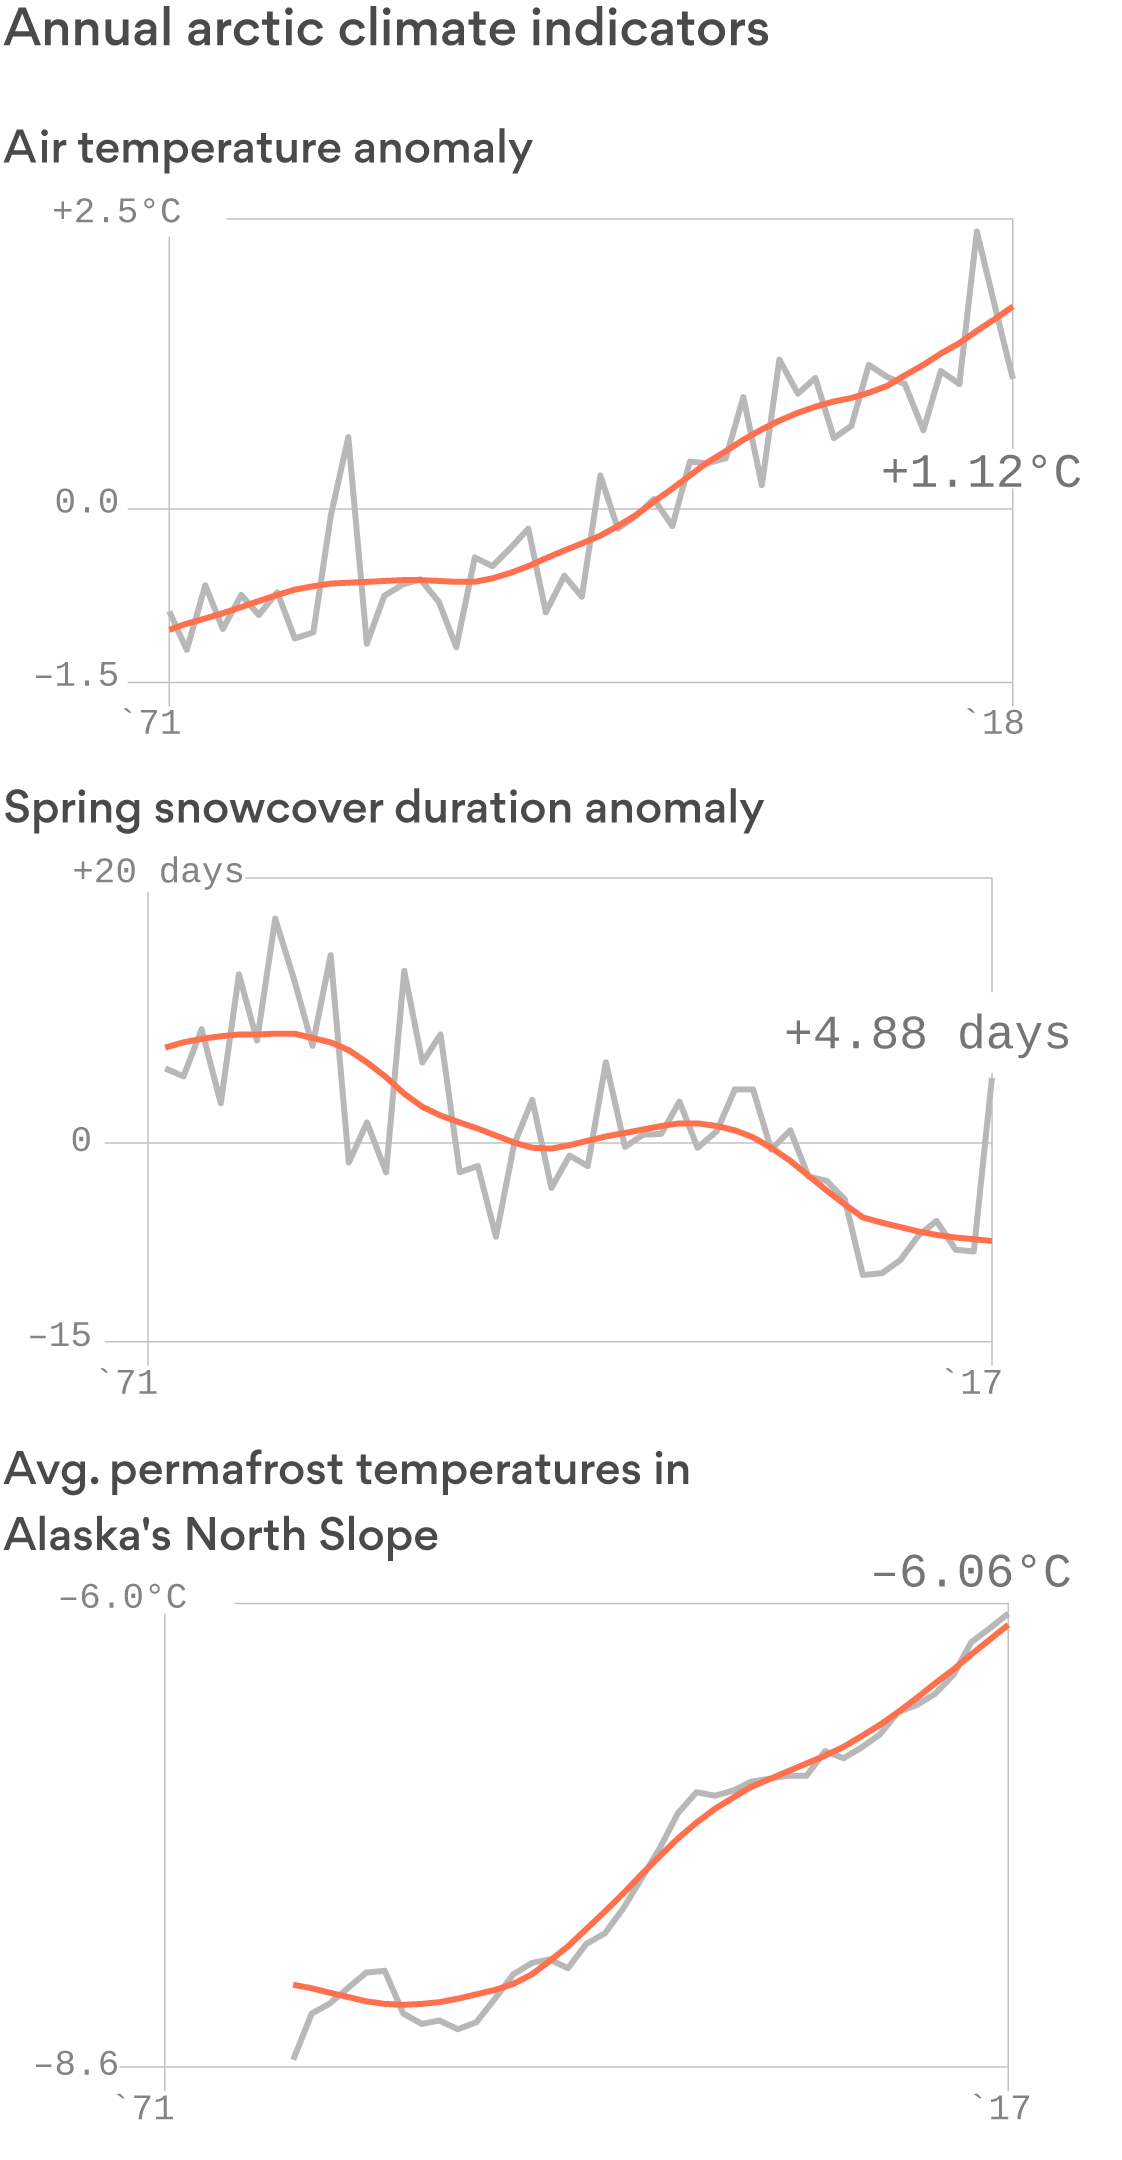 The new, changing Arctic climate favors a baked Alaska